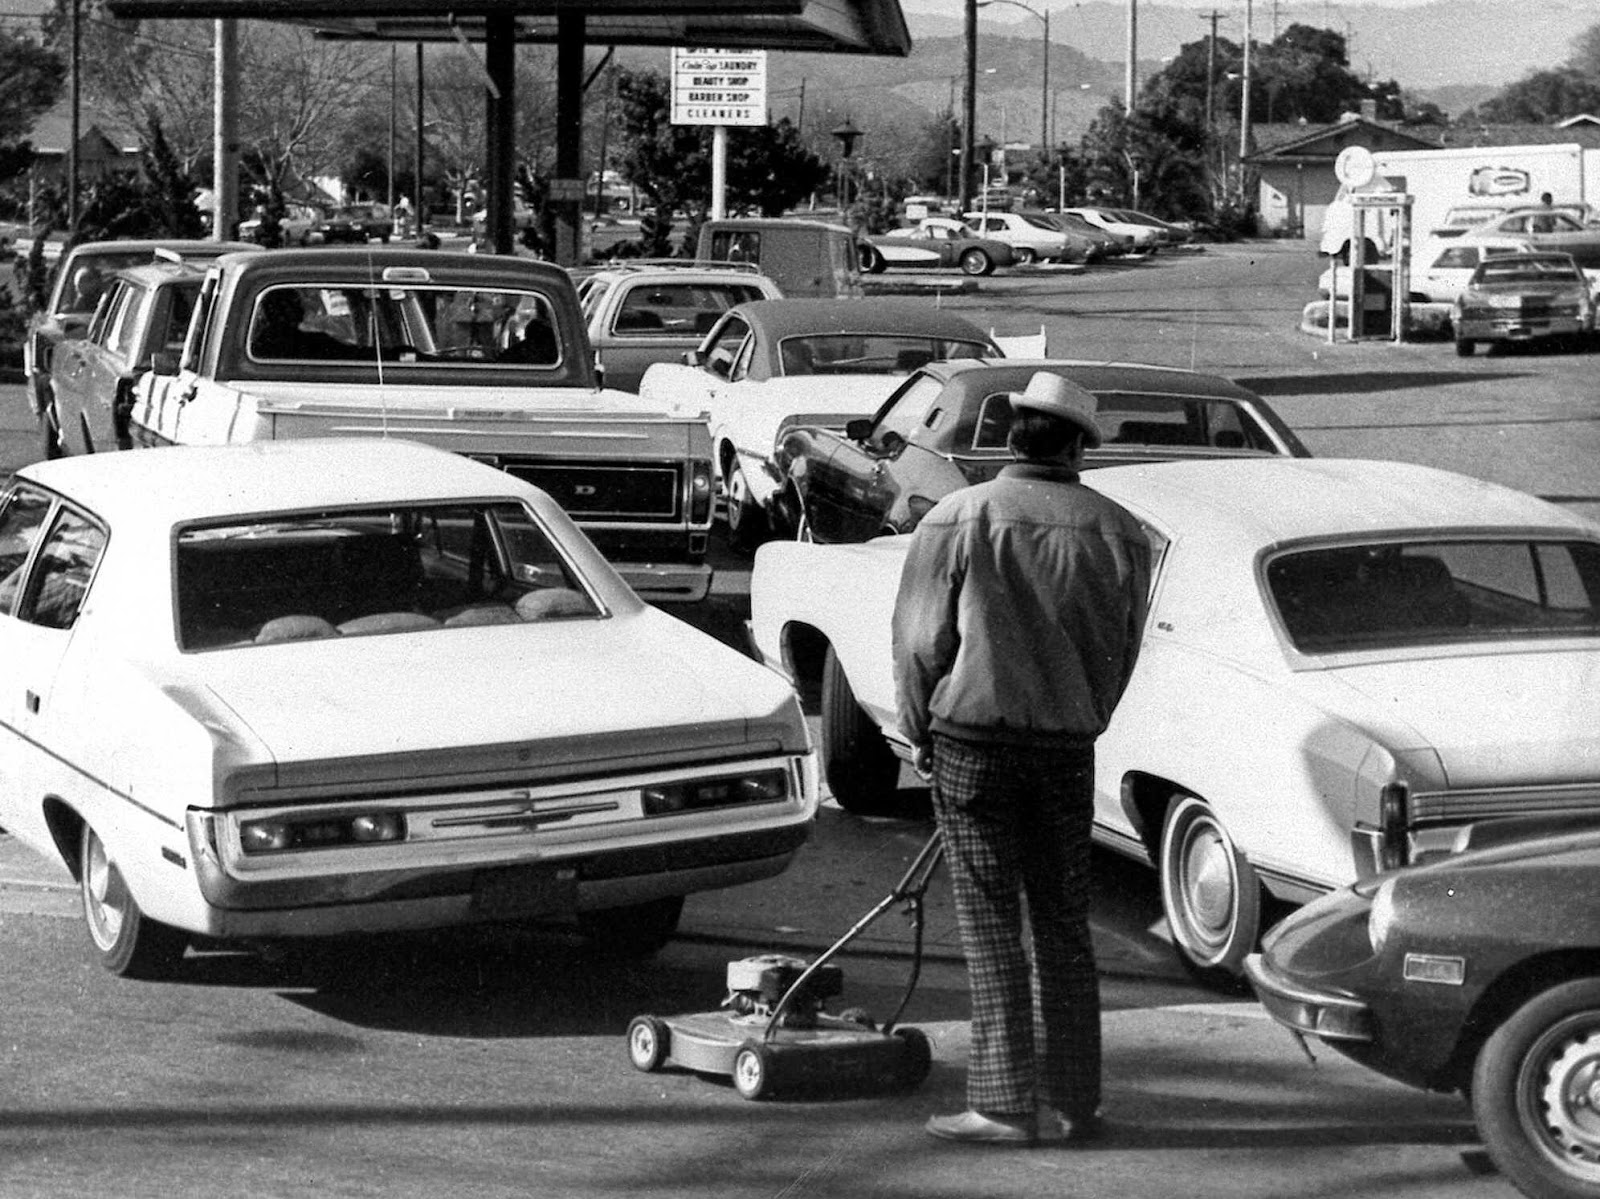 Ultimate Collection Of Rare Historical Photos. A Big Piece Of History (200 Pictures) - 1973 fuel shortage